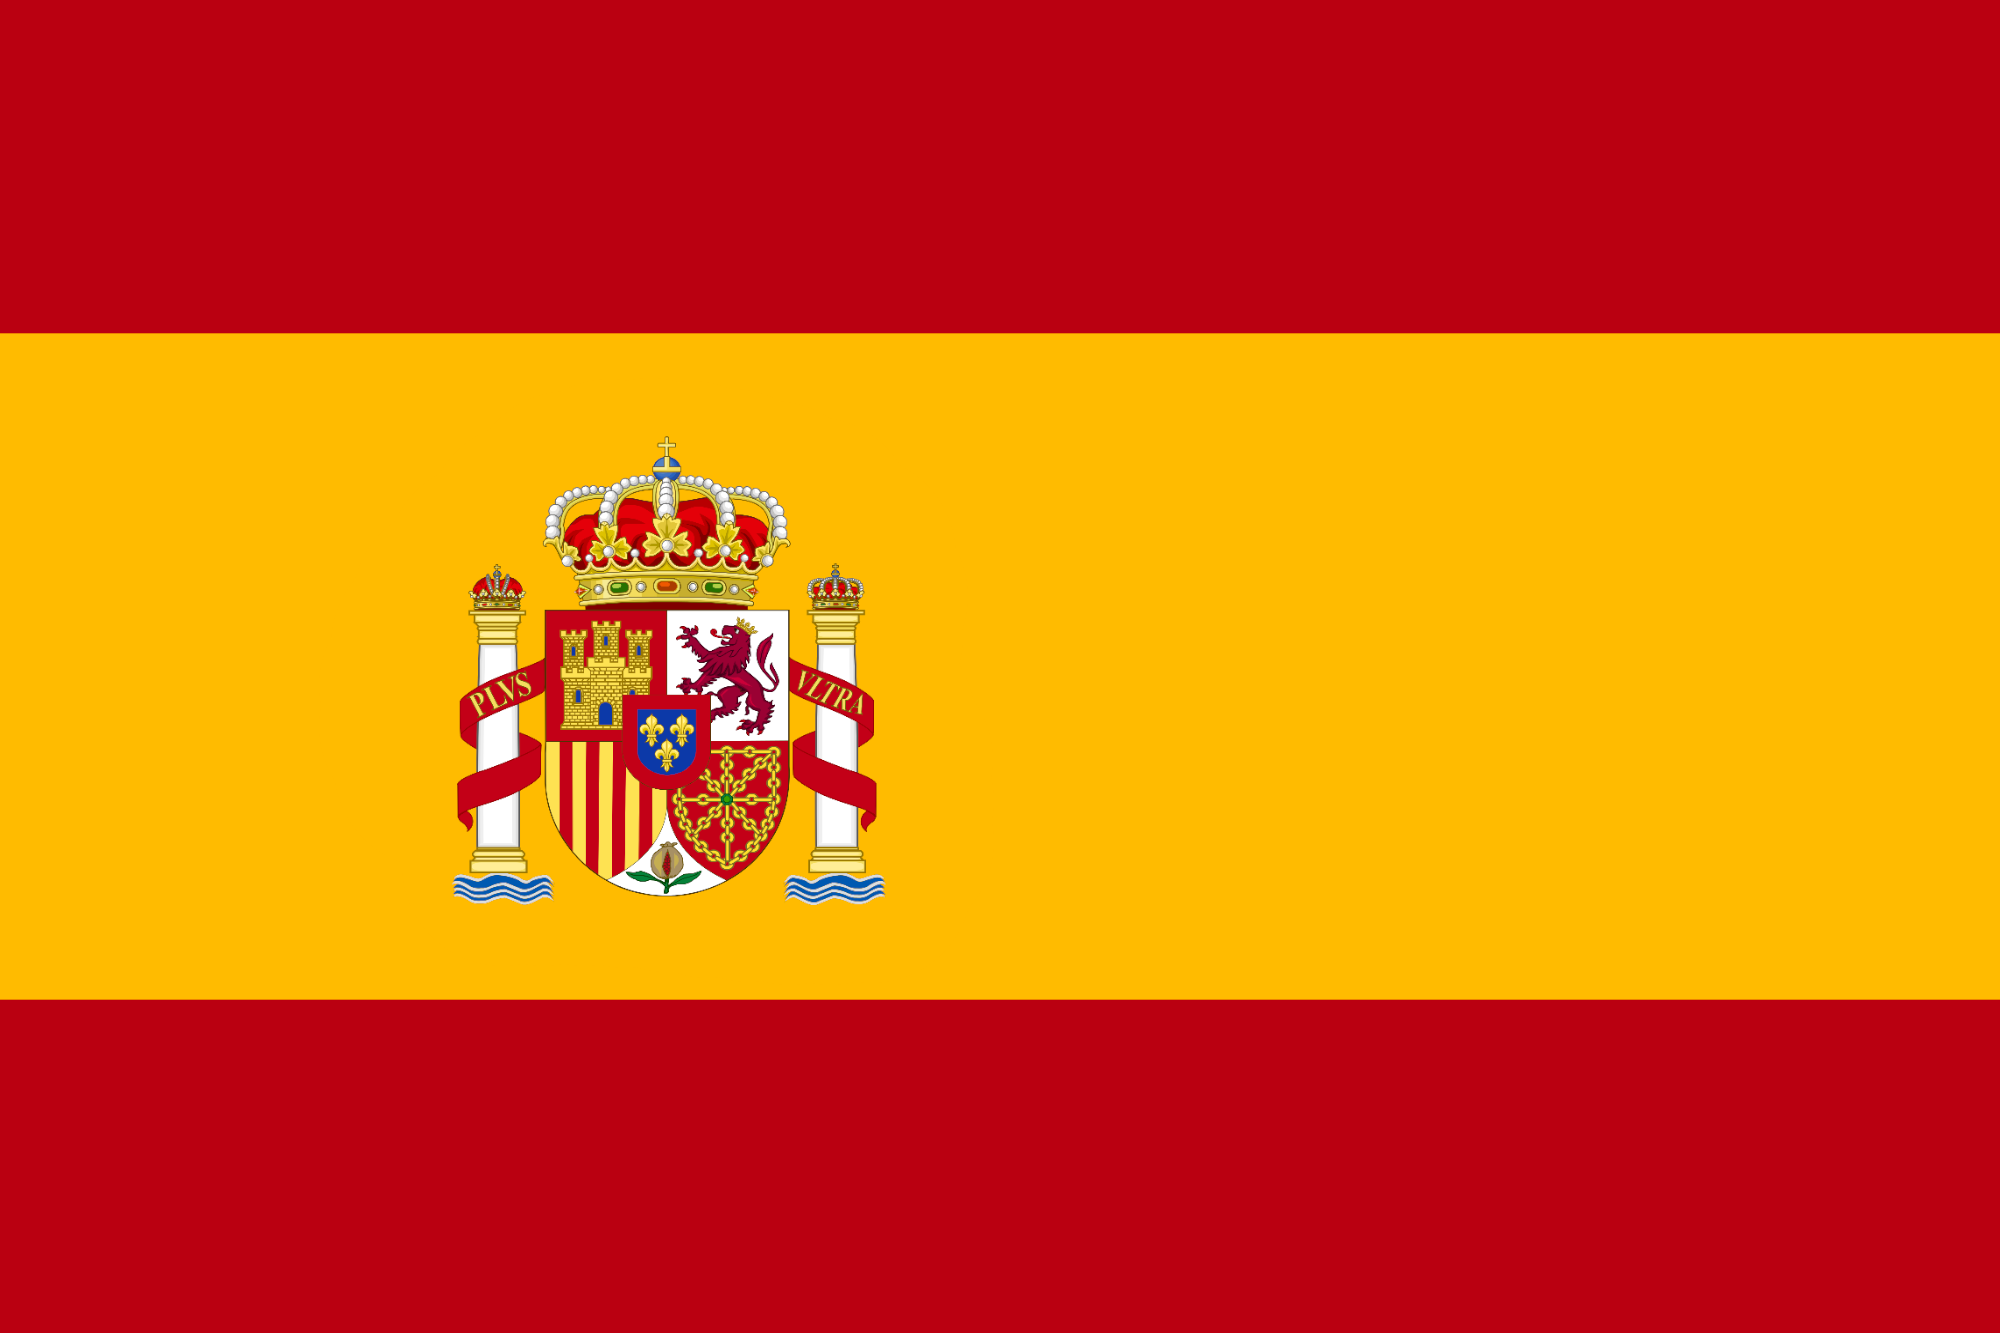 Vlag Van Spanje >> flag of spain 8 image - Monarchy Flags mod for Hearts of Iron III: Their Finest Hour - Mod DB